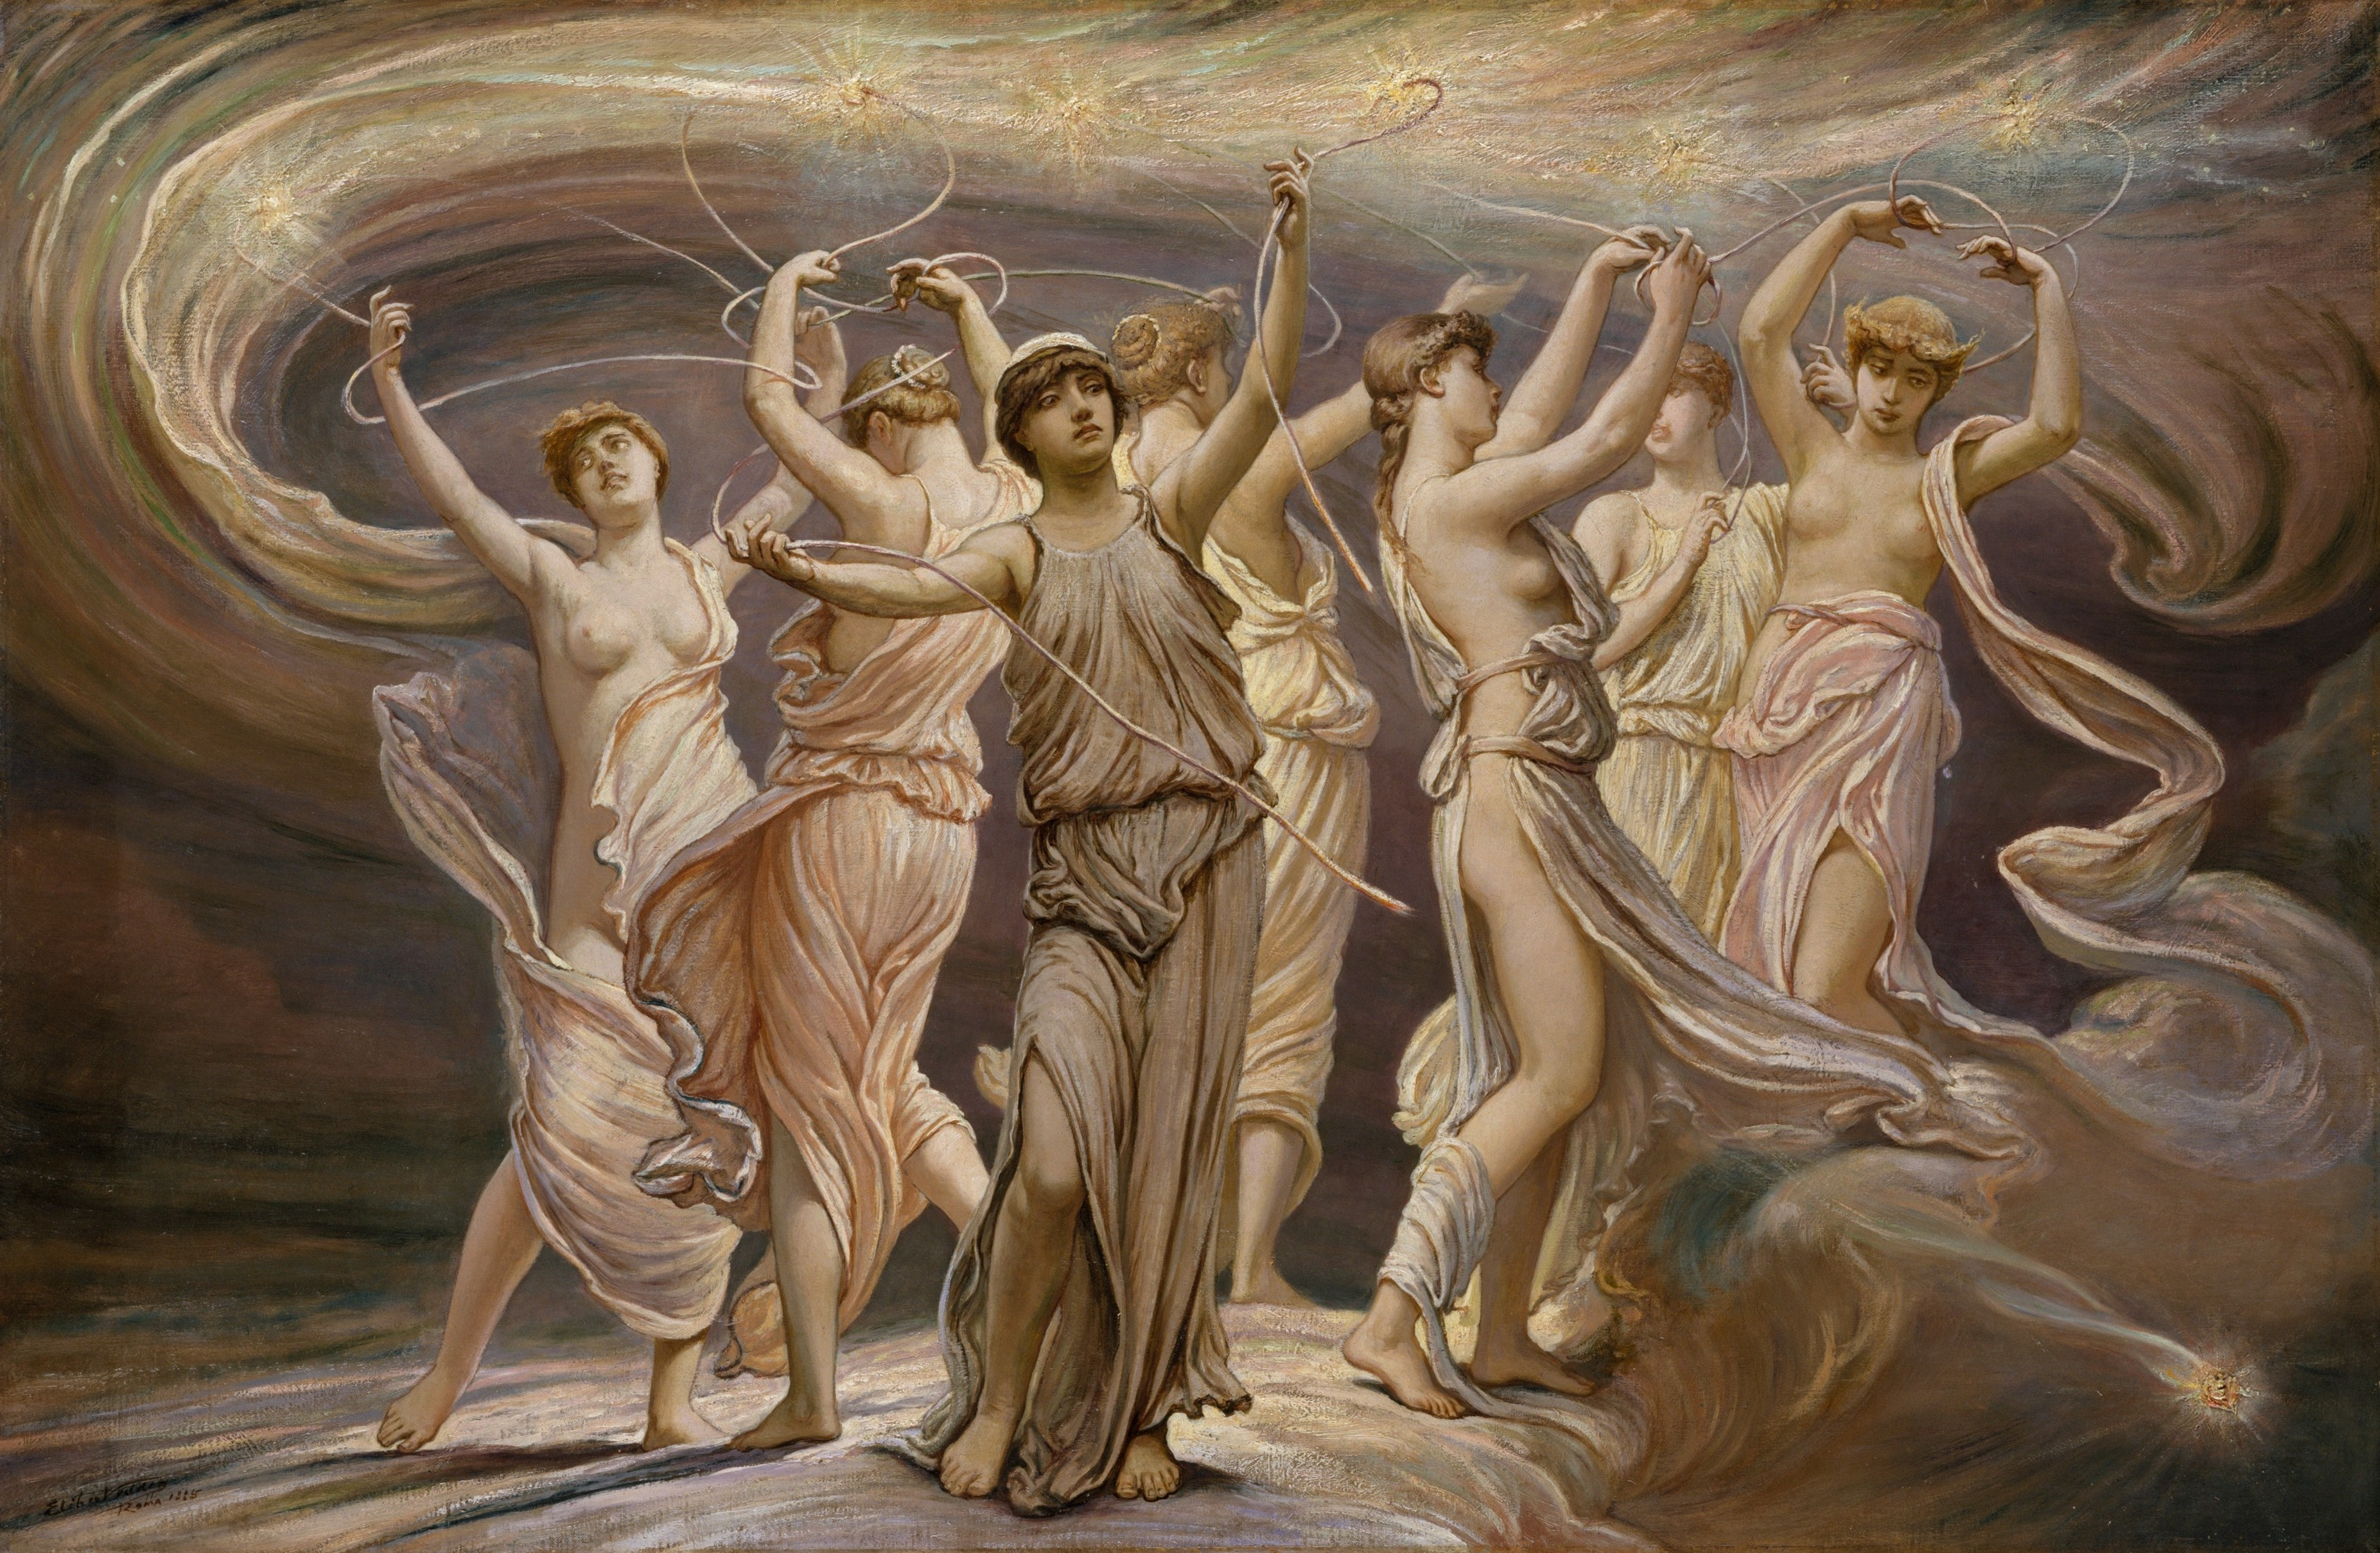 Elihu_Vedder_-_The_Pleiades,_1885